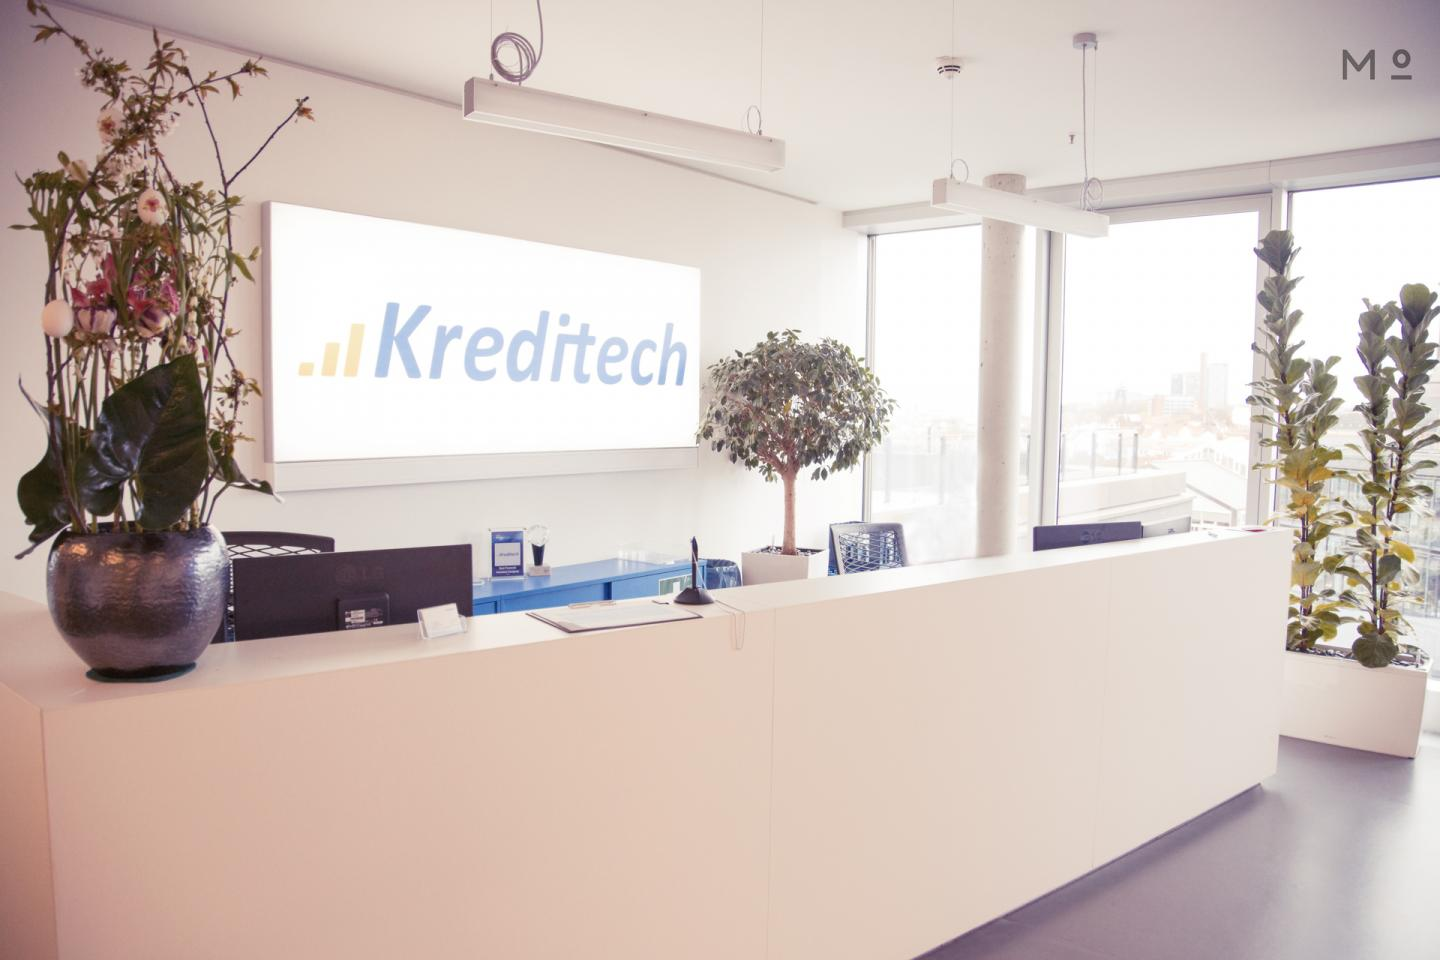 Kreditech Jobs Careers Opportunities Meritocracy